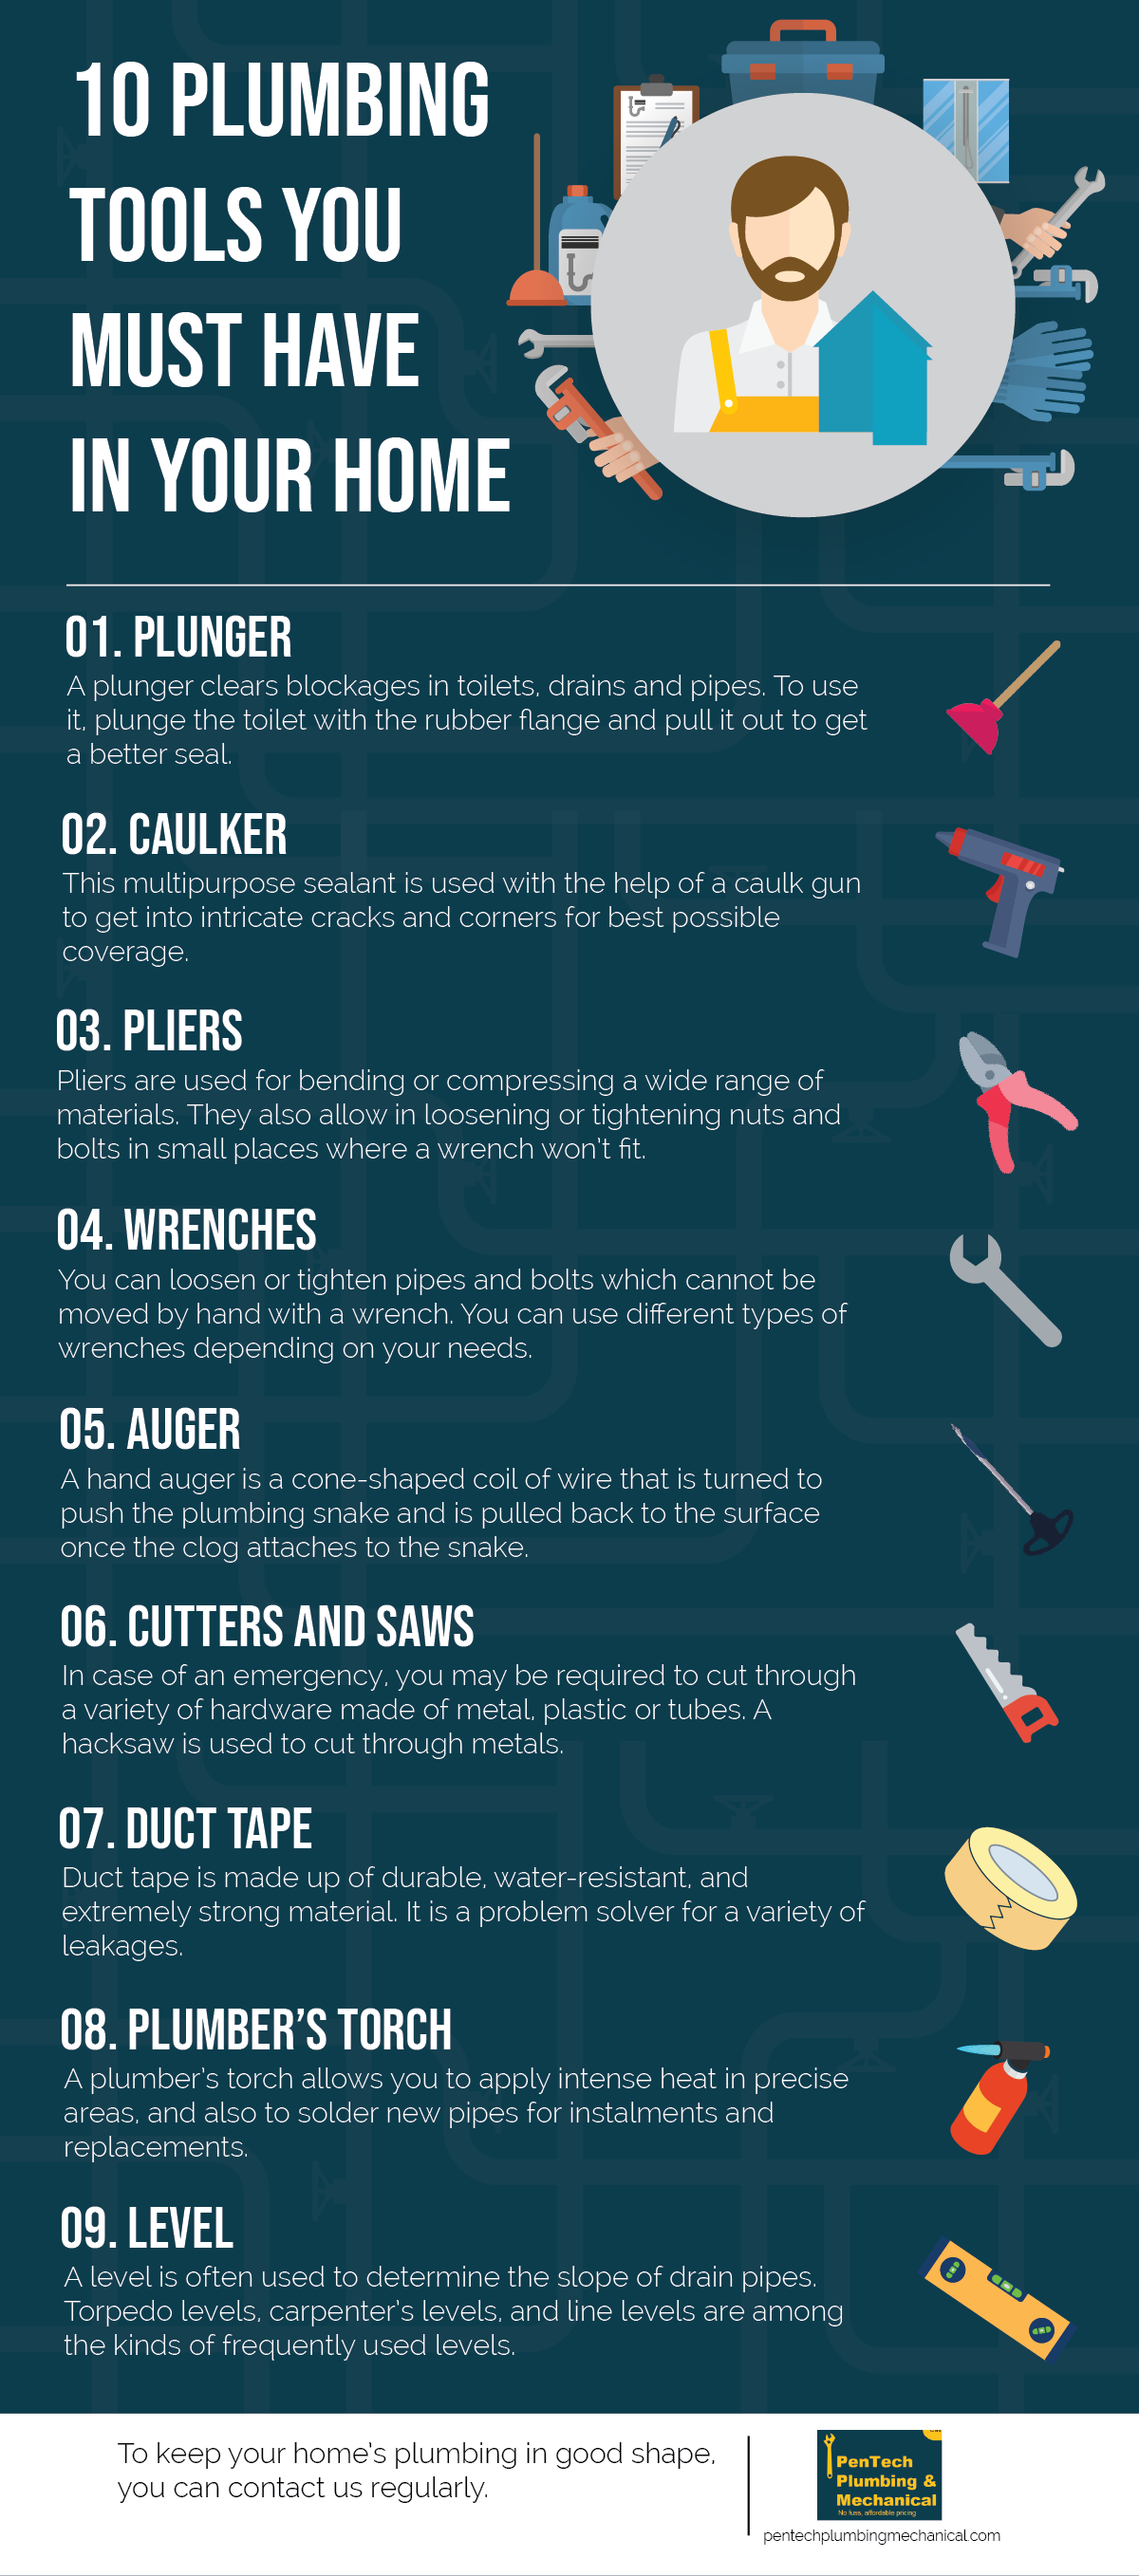 Plumbing Tools You Must Have In Your Home